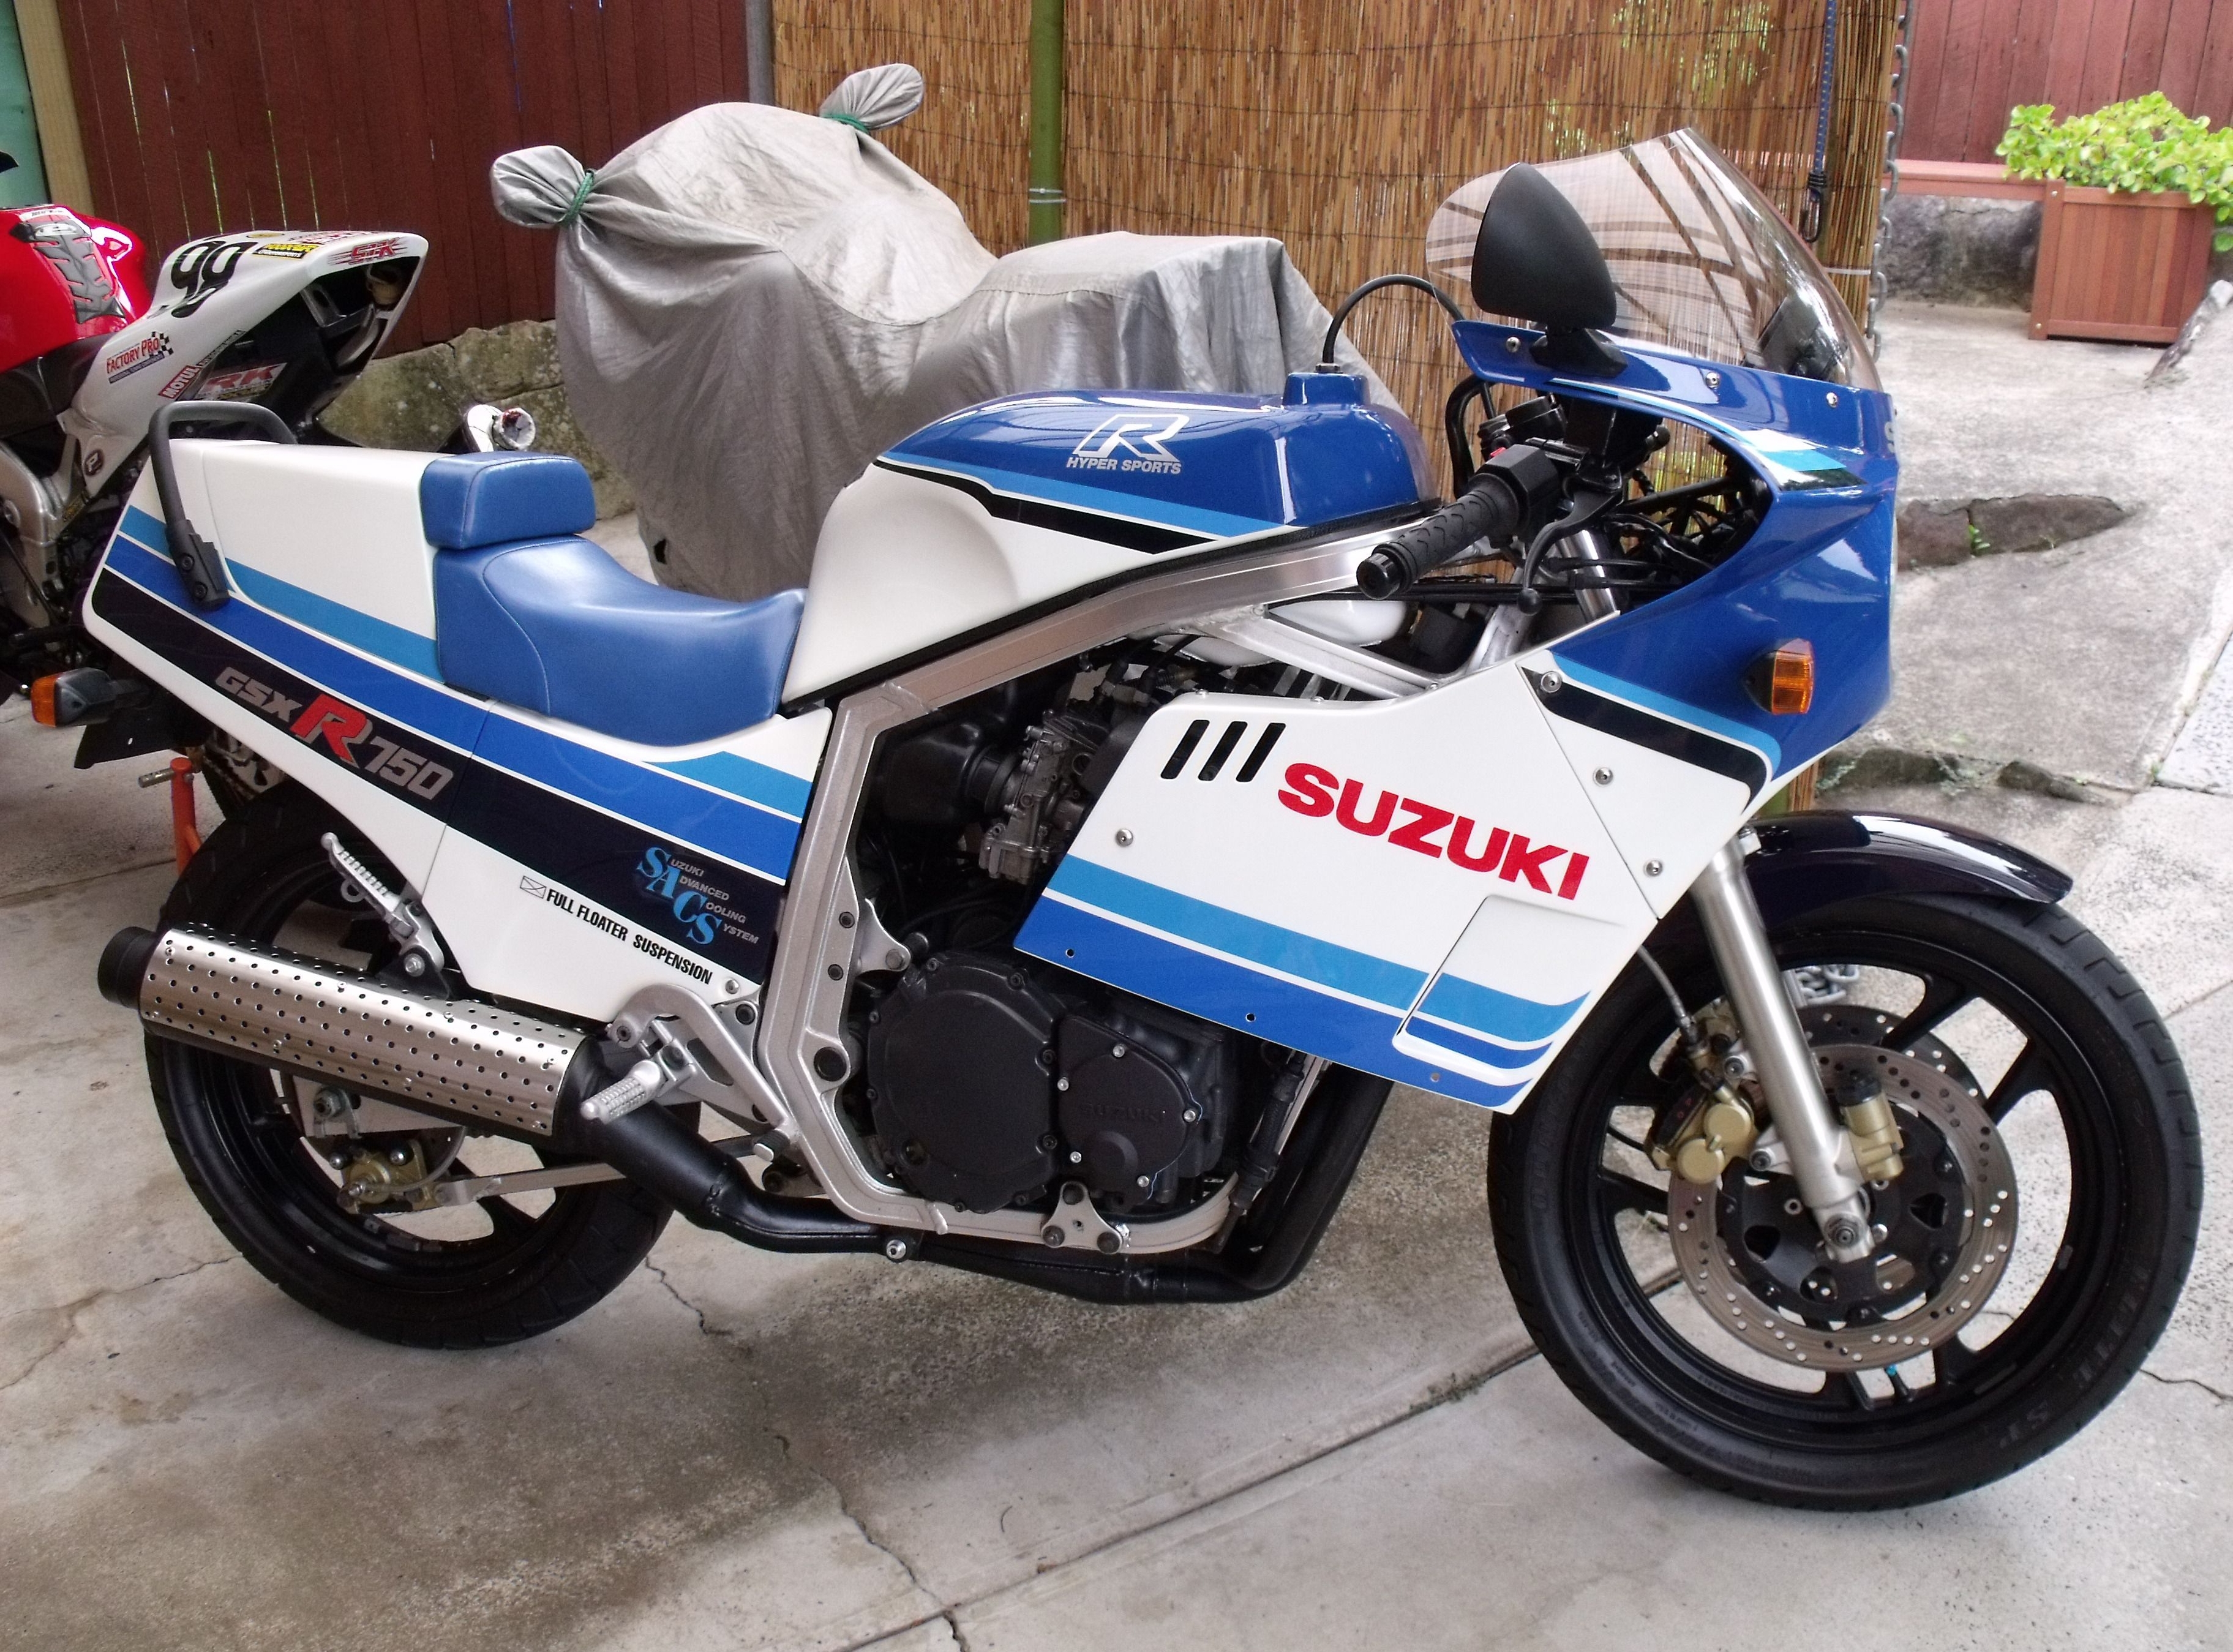 1985 suzuki gsx r 750 pics specs and information. Black Bedroom Furniture Sets. Home Design Ideas